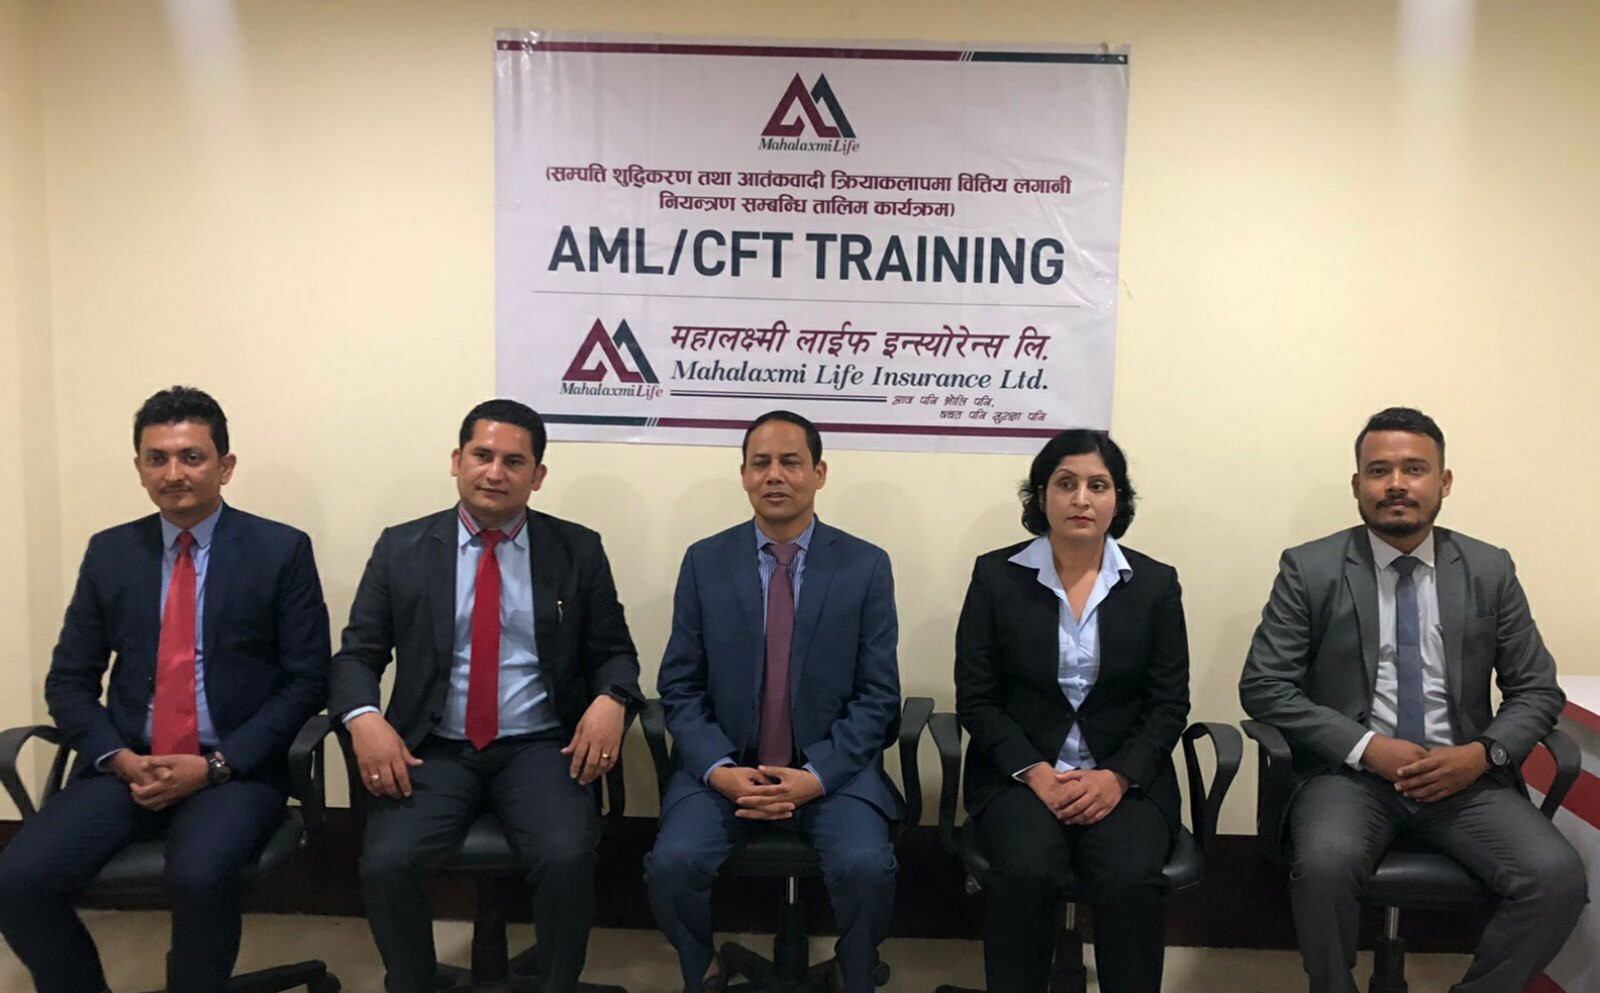 Mahalaxmi Life Insurance Ltd. conducted AML CFT Training in Province No. 1